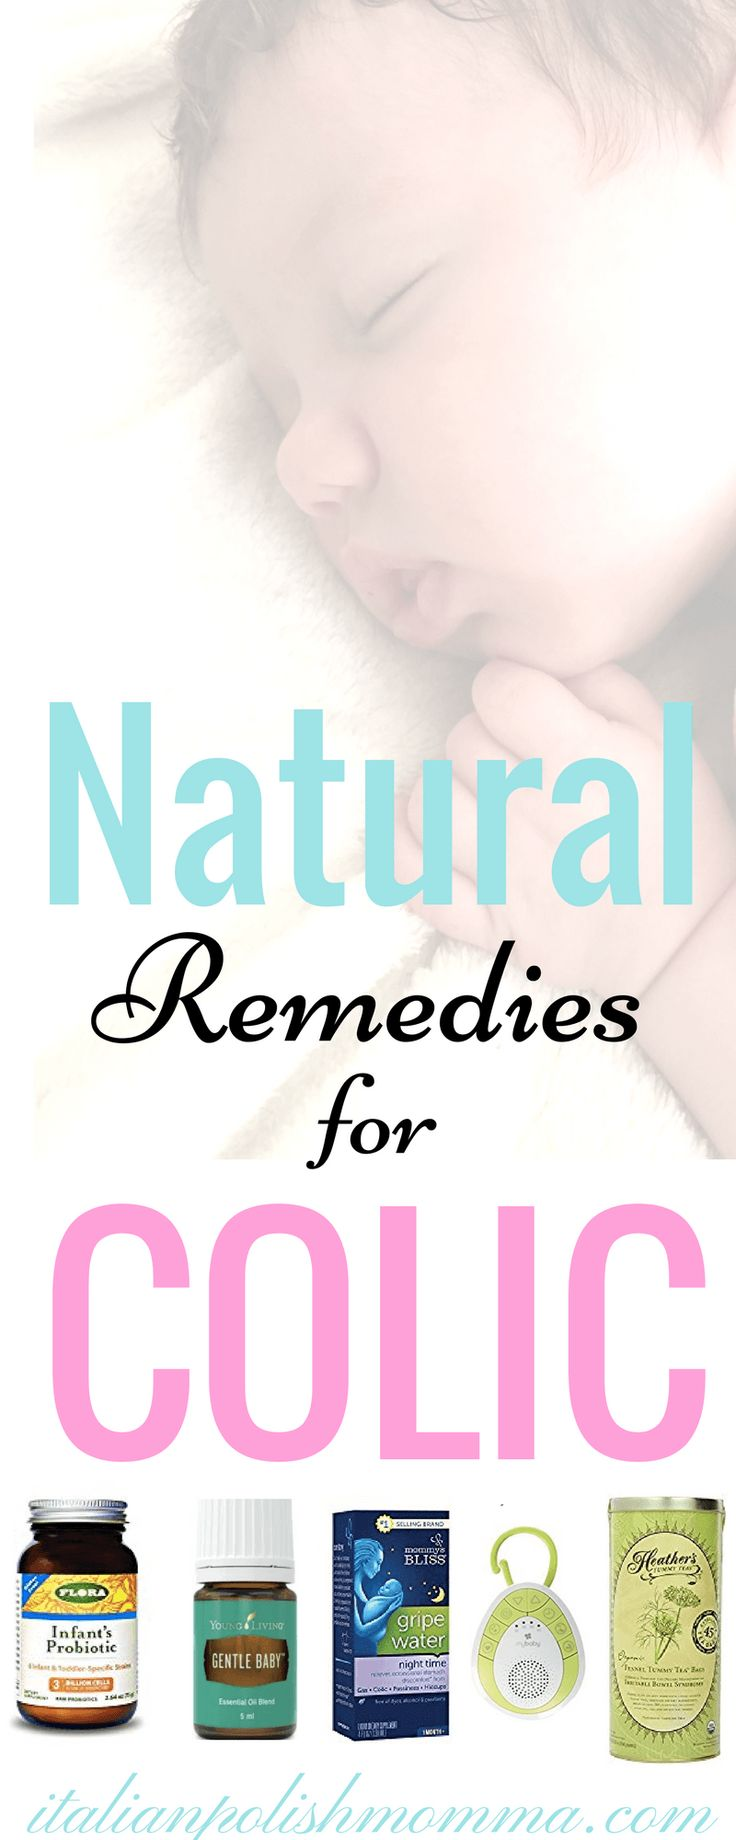 5656 Best Essential Oils Group Board Images On Pinterest